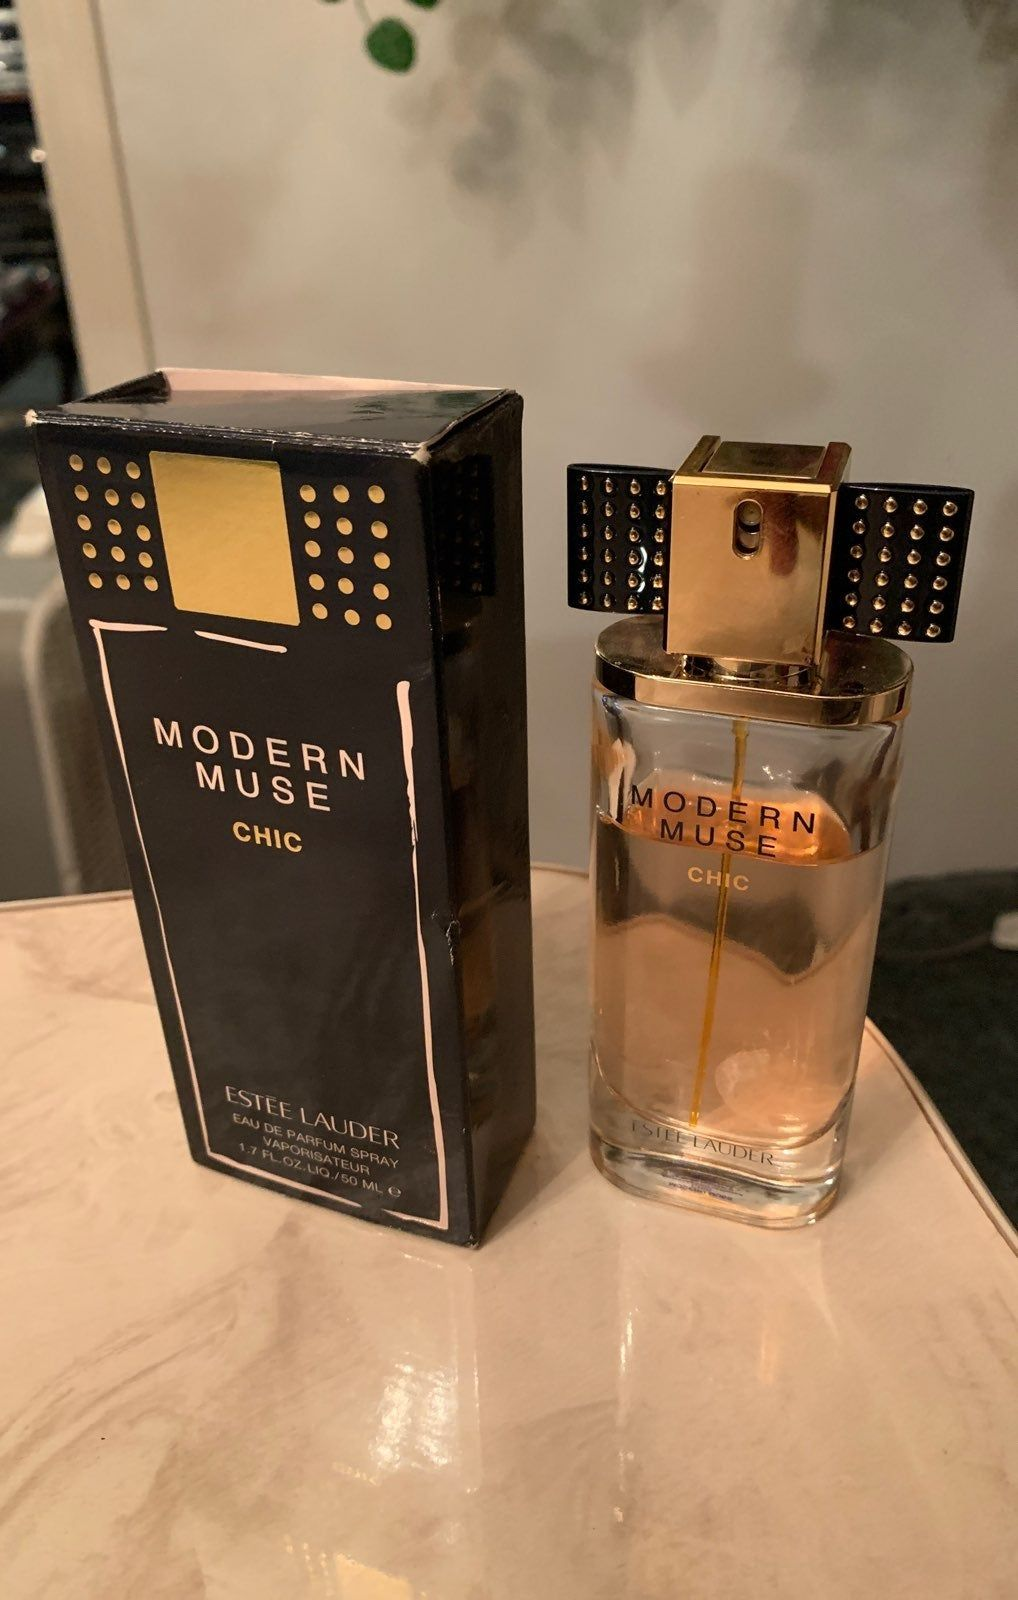 Modern Muse Chic Perfume For Women 75 Left From 1 7 Oz Chic Perfume Modern Muse Fragrances Perfume